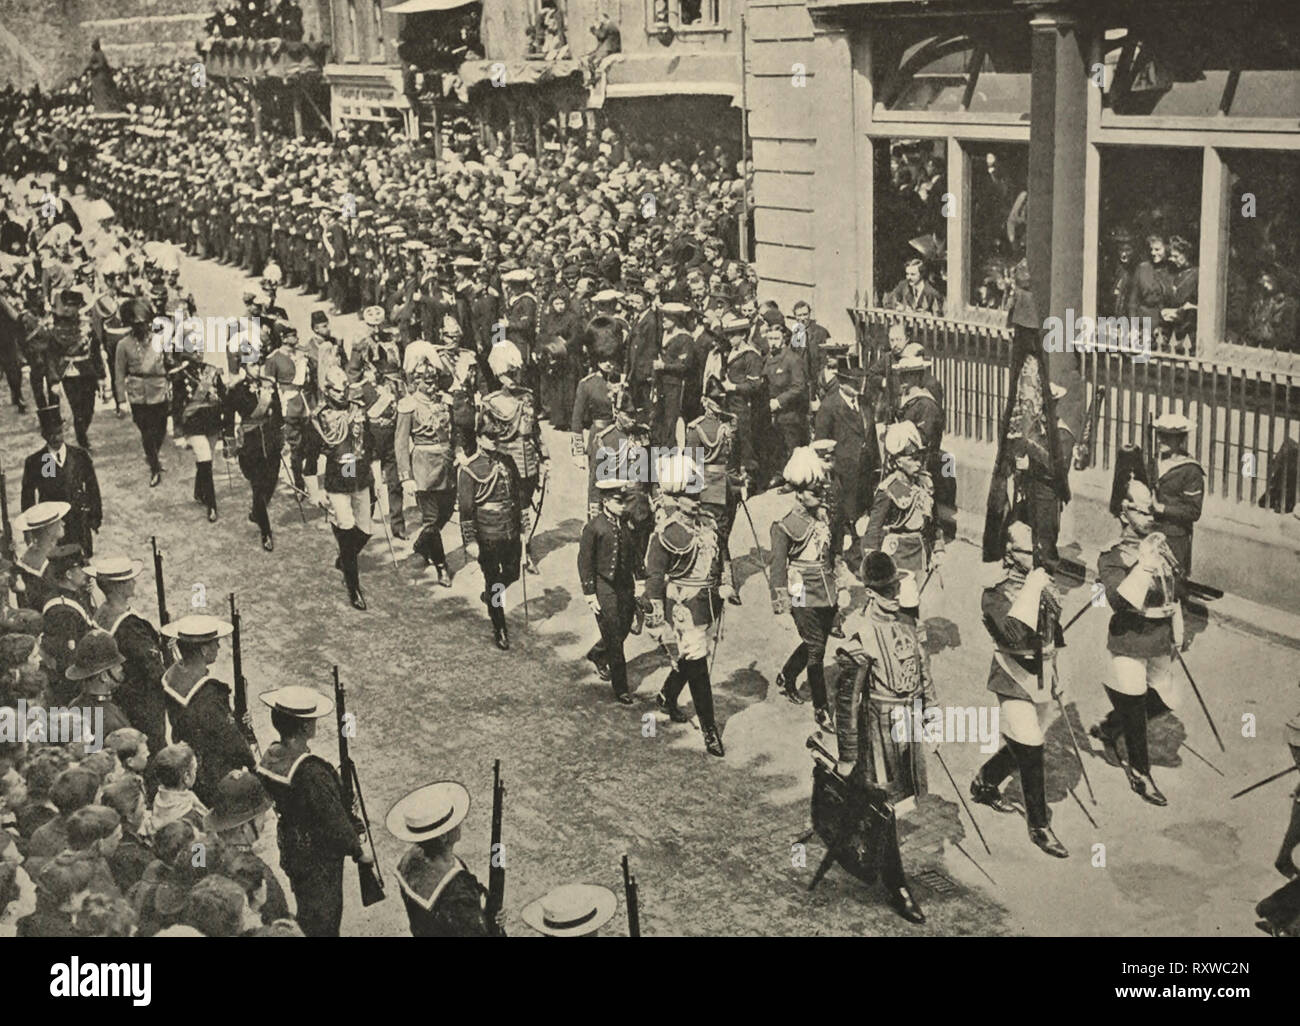 European Kings at the funeral procession of King Edward VII - 1910 - Stock Image